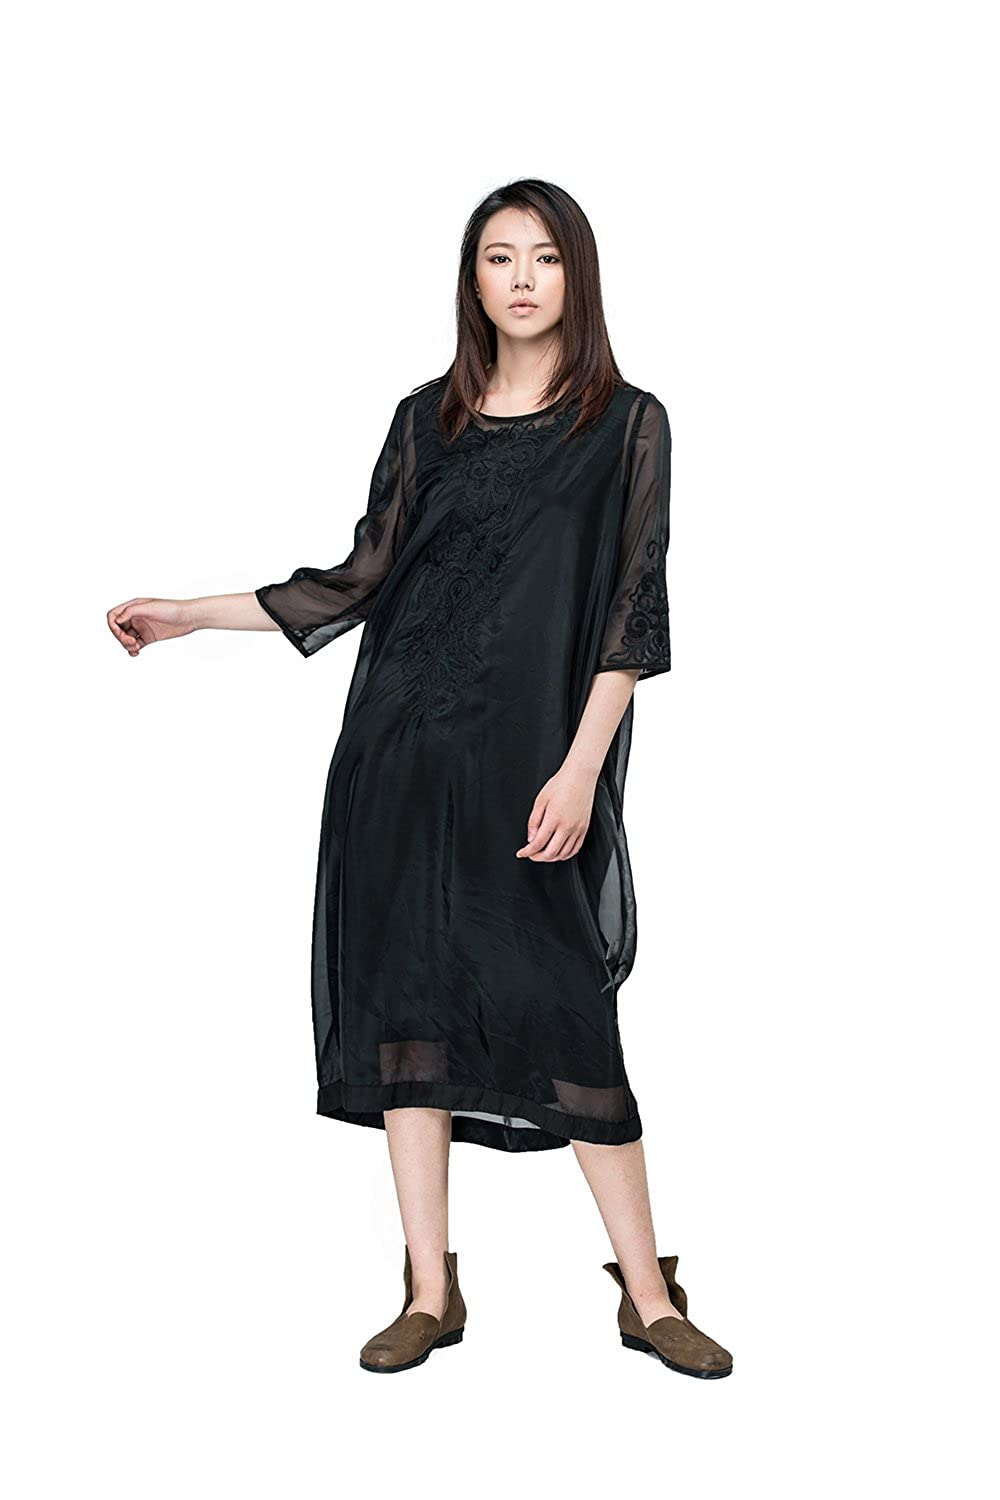 OUTLINE Women's Autumn Lace Embroidered Three Quarter Sleeve Black Shift Dress